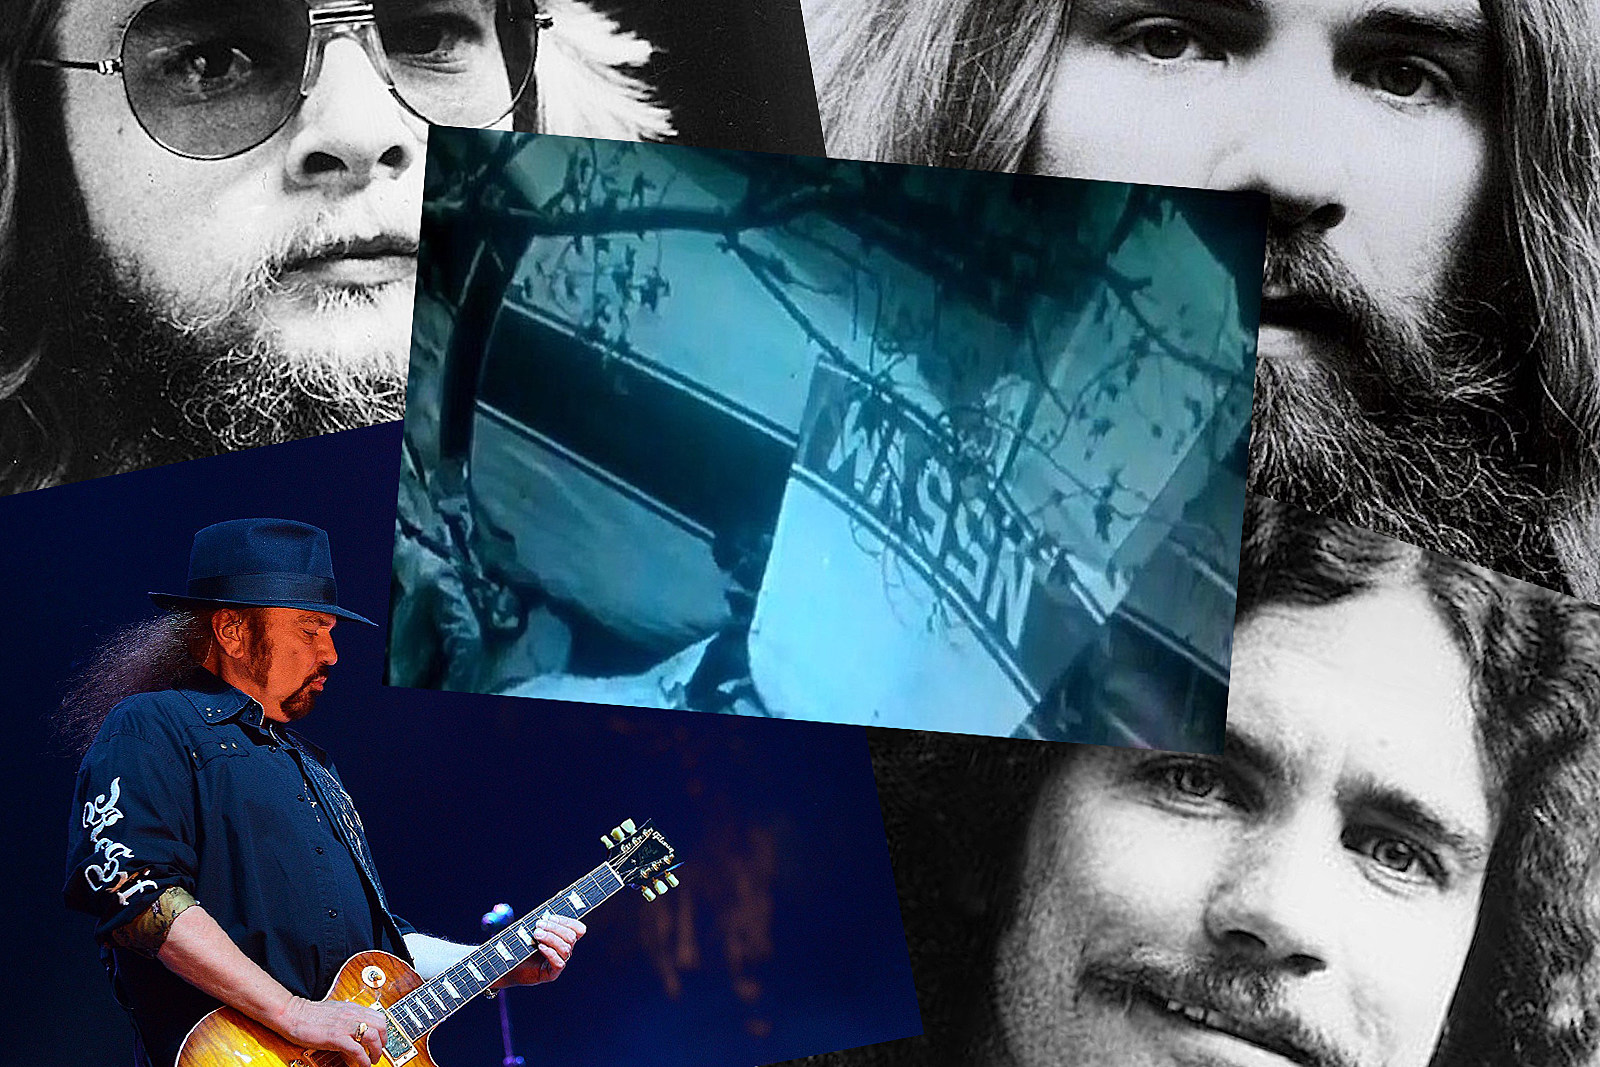 What Happened to the Survivors of the Lynyrd Skynyrd Plane Crash?